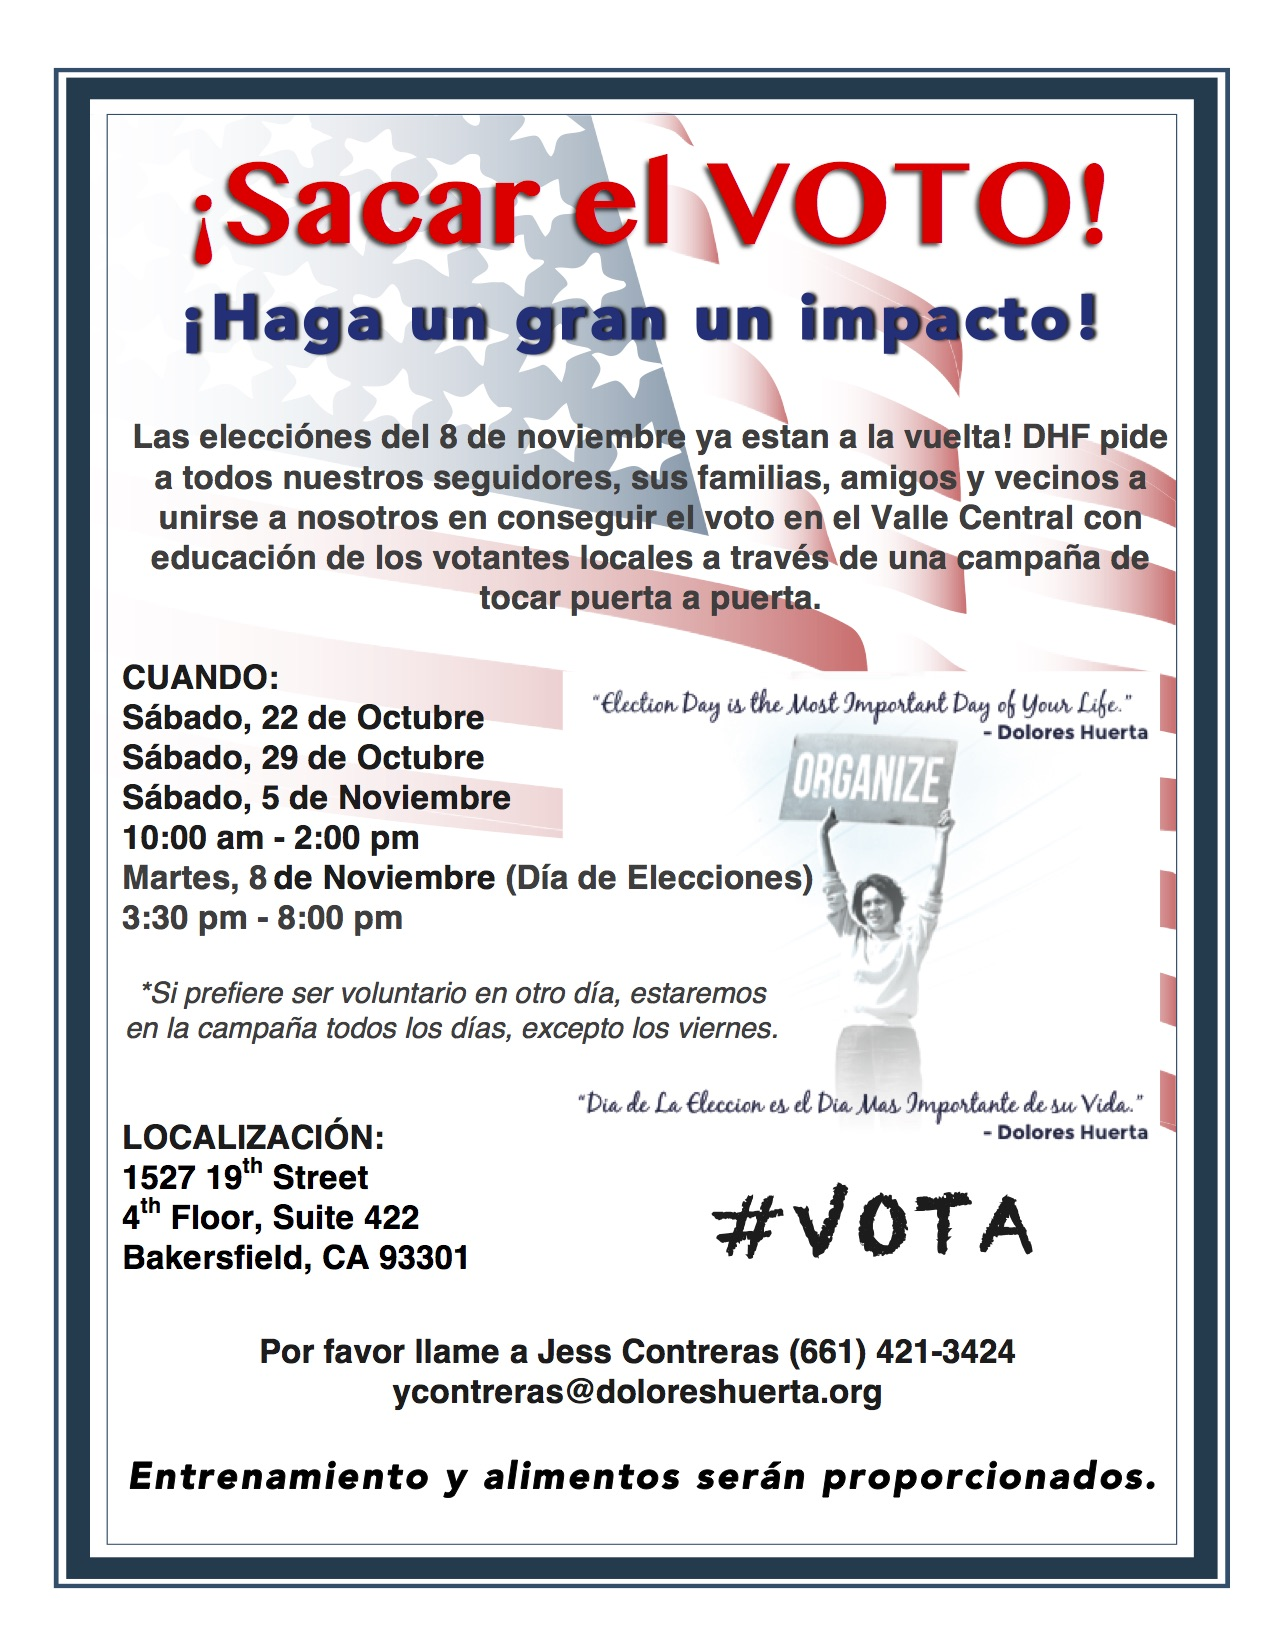 gotv-kern-volunteer-flyer-spanish-9-16